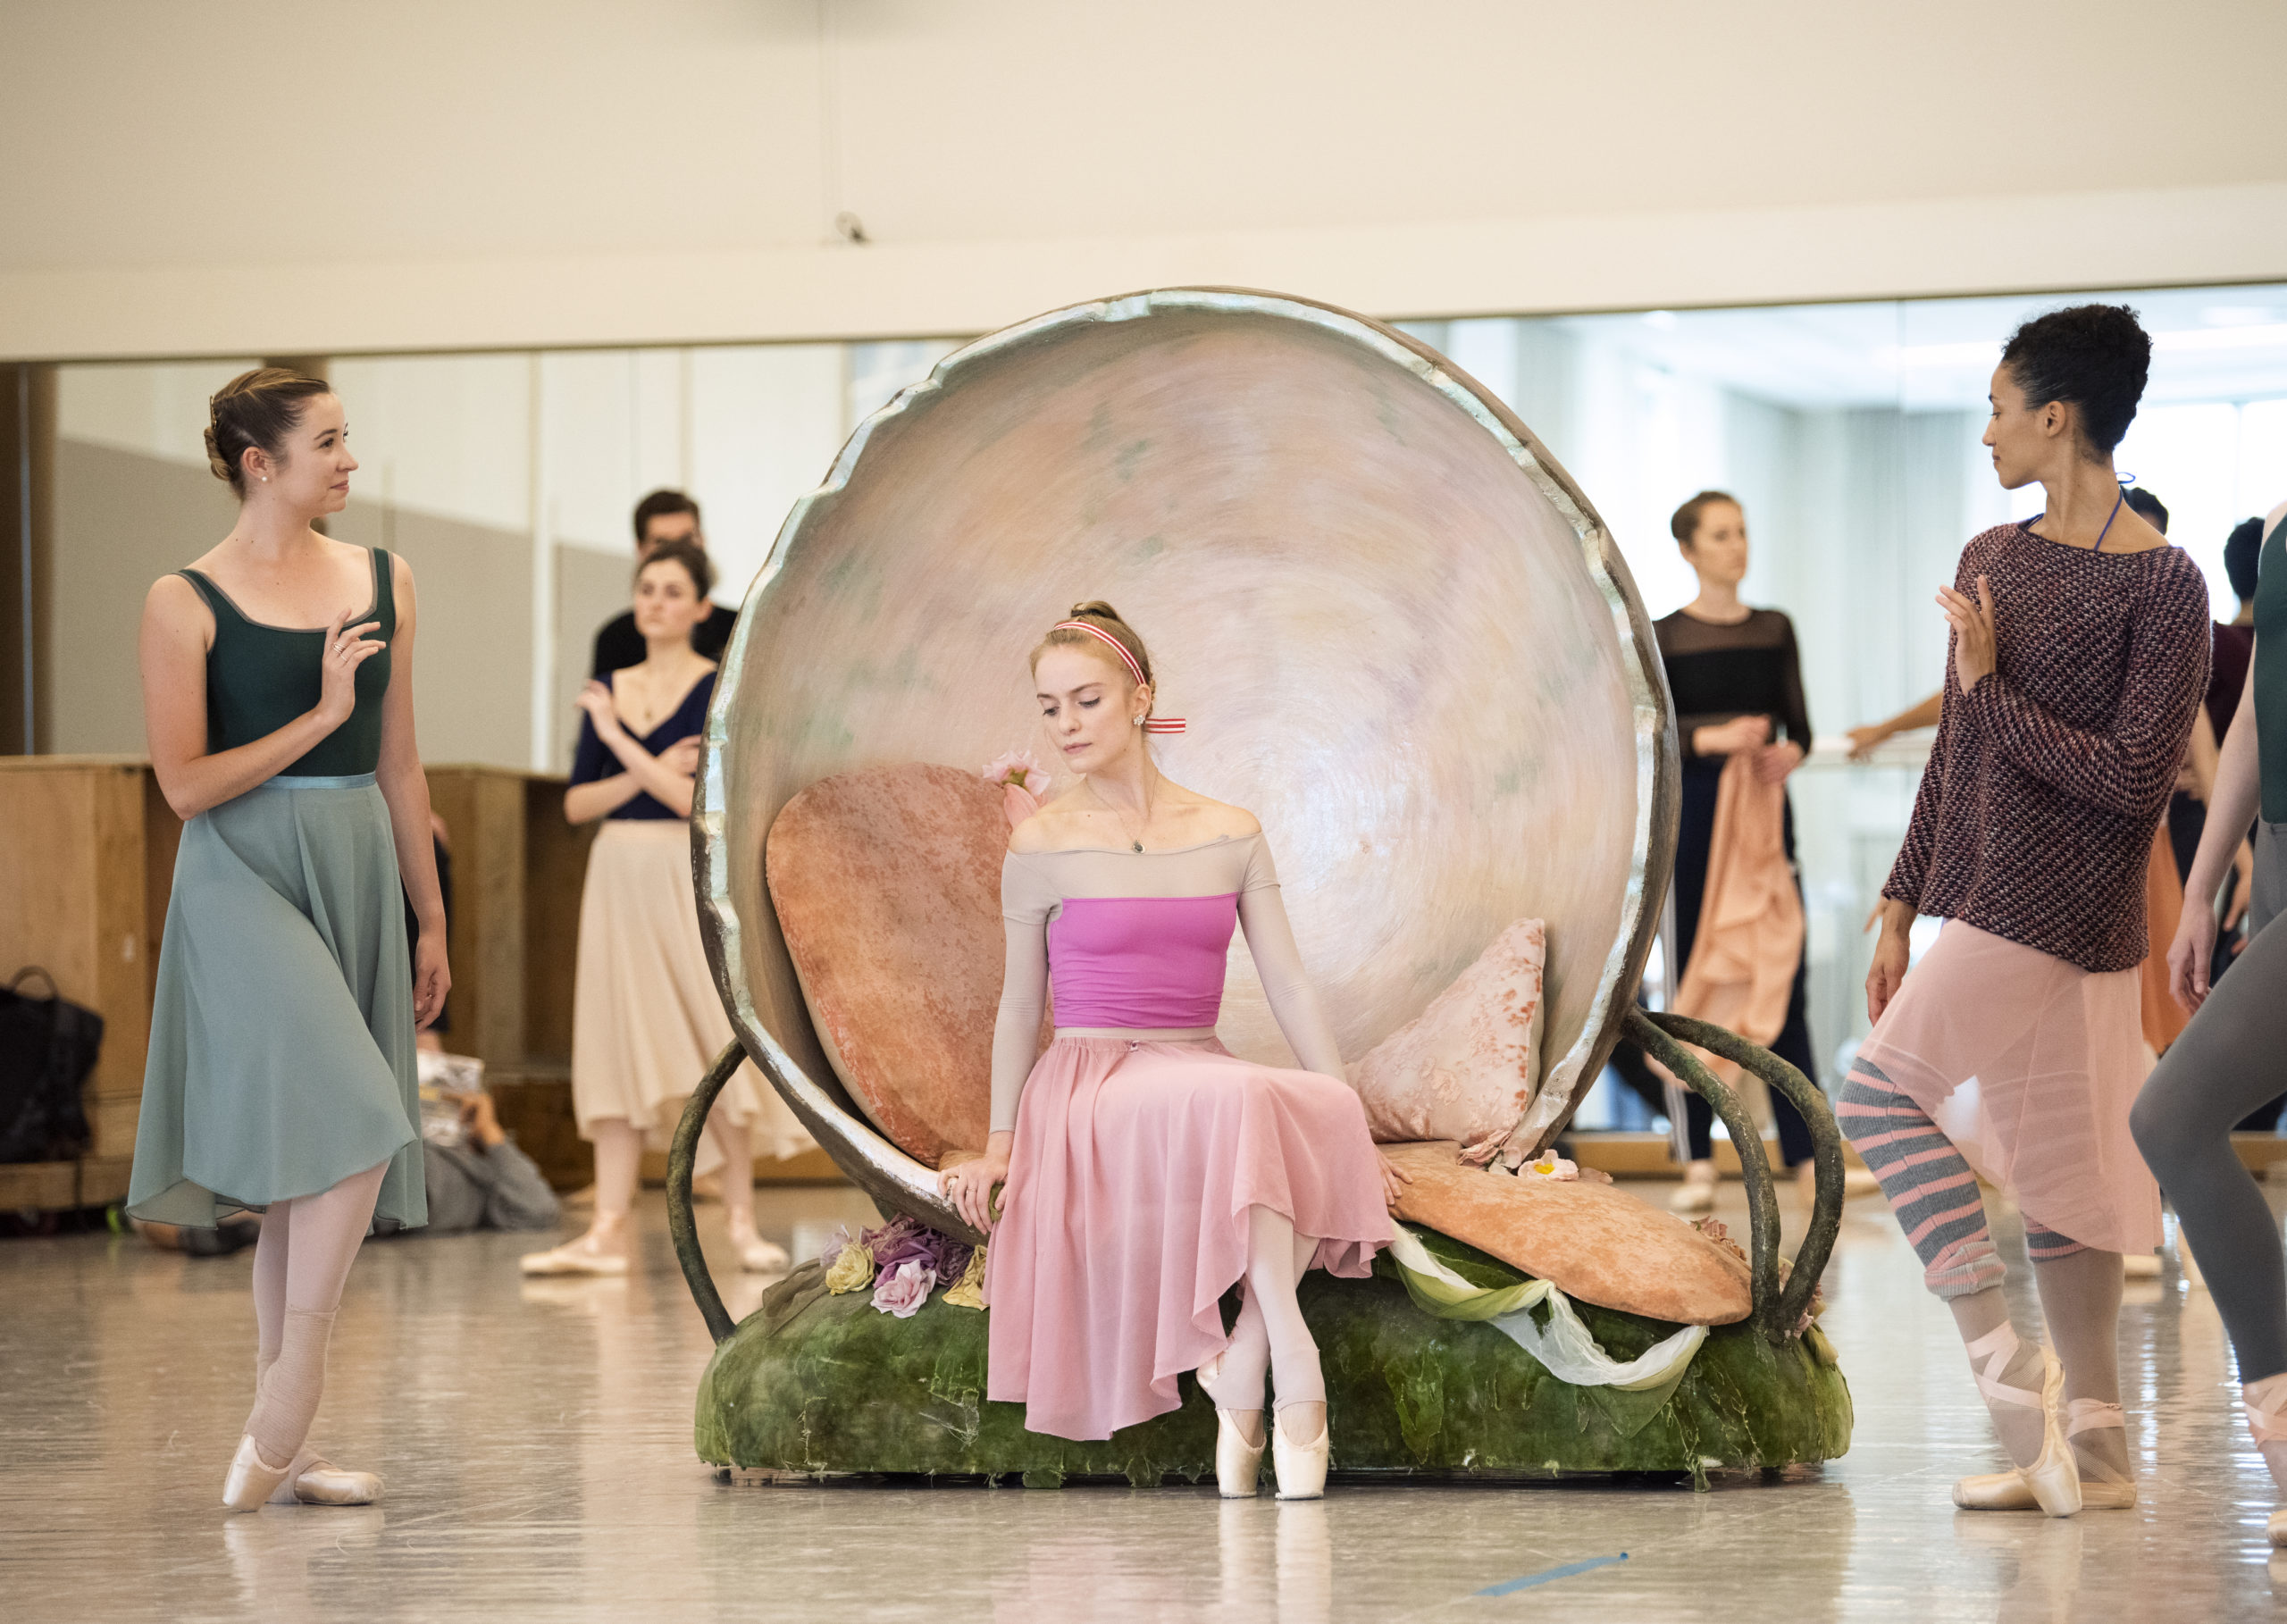 GEORGE BALANCHINE'S A MIDSUMMER NIGHT'S DREAM RETURNS TO SAN FRANCISCO BALLET FOR THE FIRST TIME IN 34 YEARS, MARCH 6–15, 2020